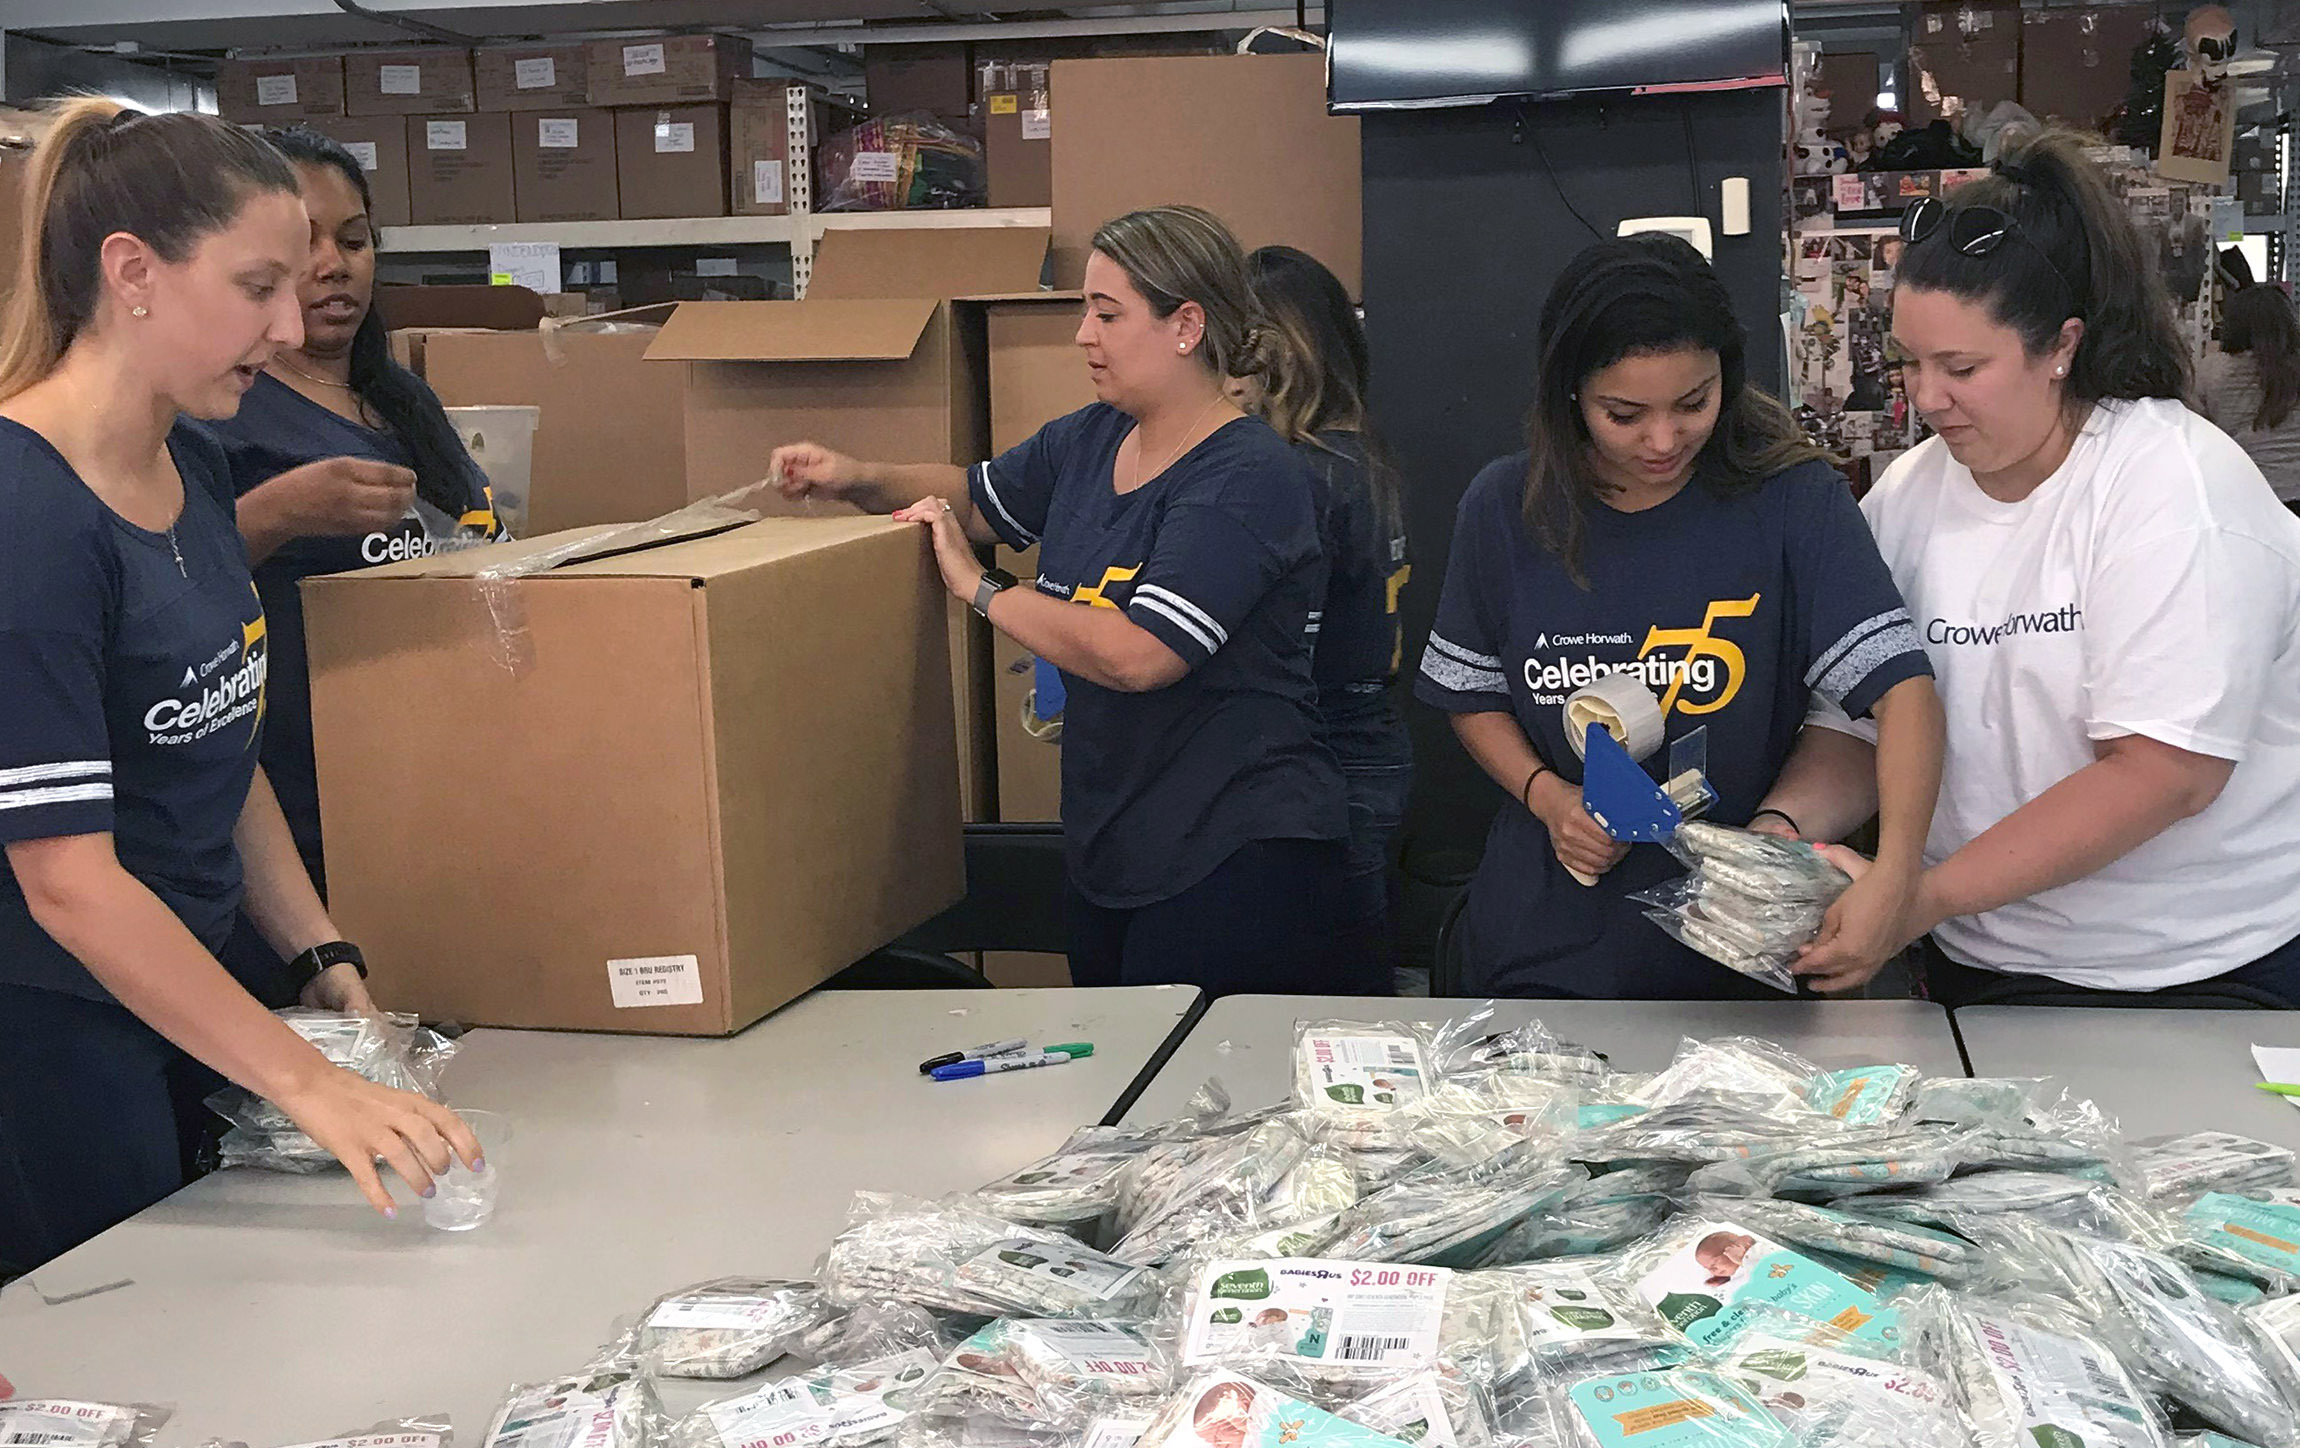 Crowe personnel from the New York and Livingston, New Jersey offices compile care packages.